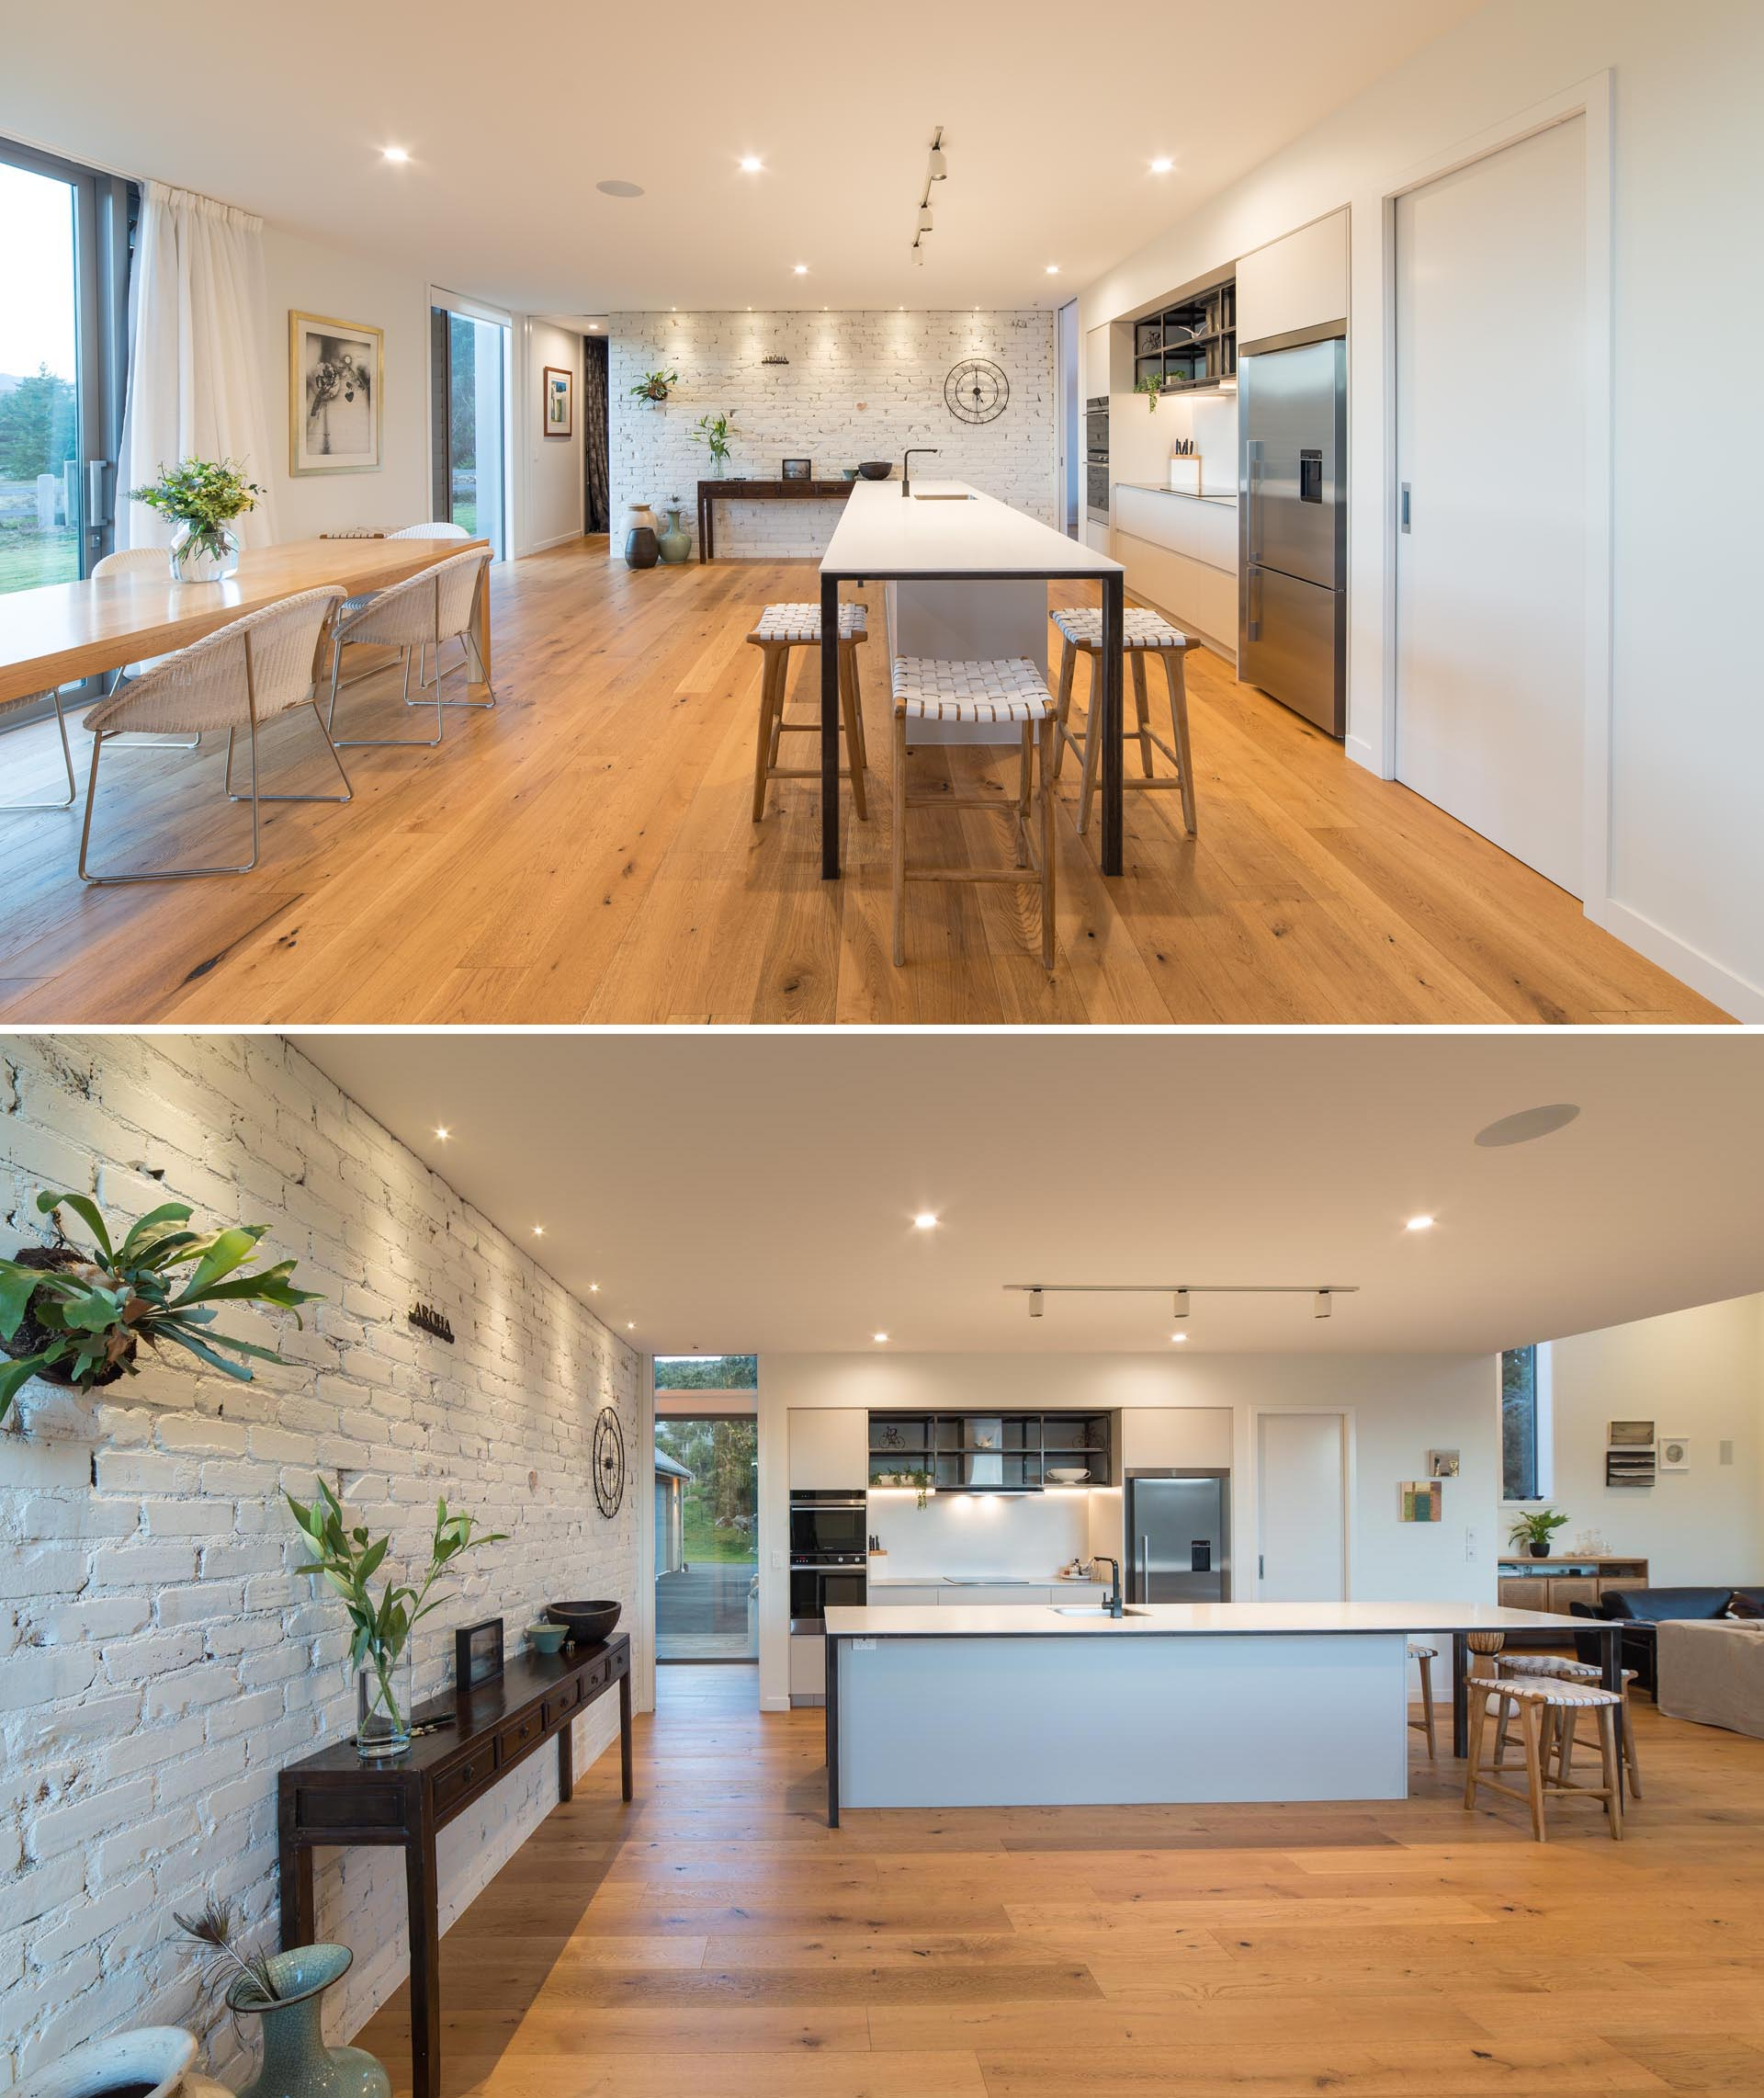 An open plan kitchen and dining area that had a white painted brick wall.